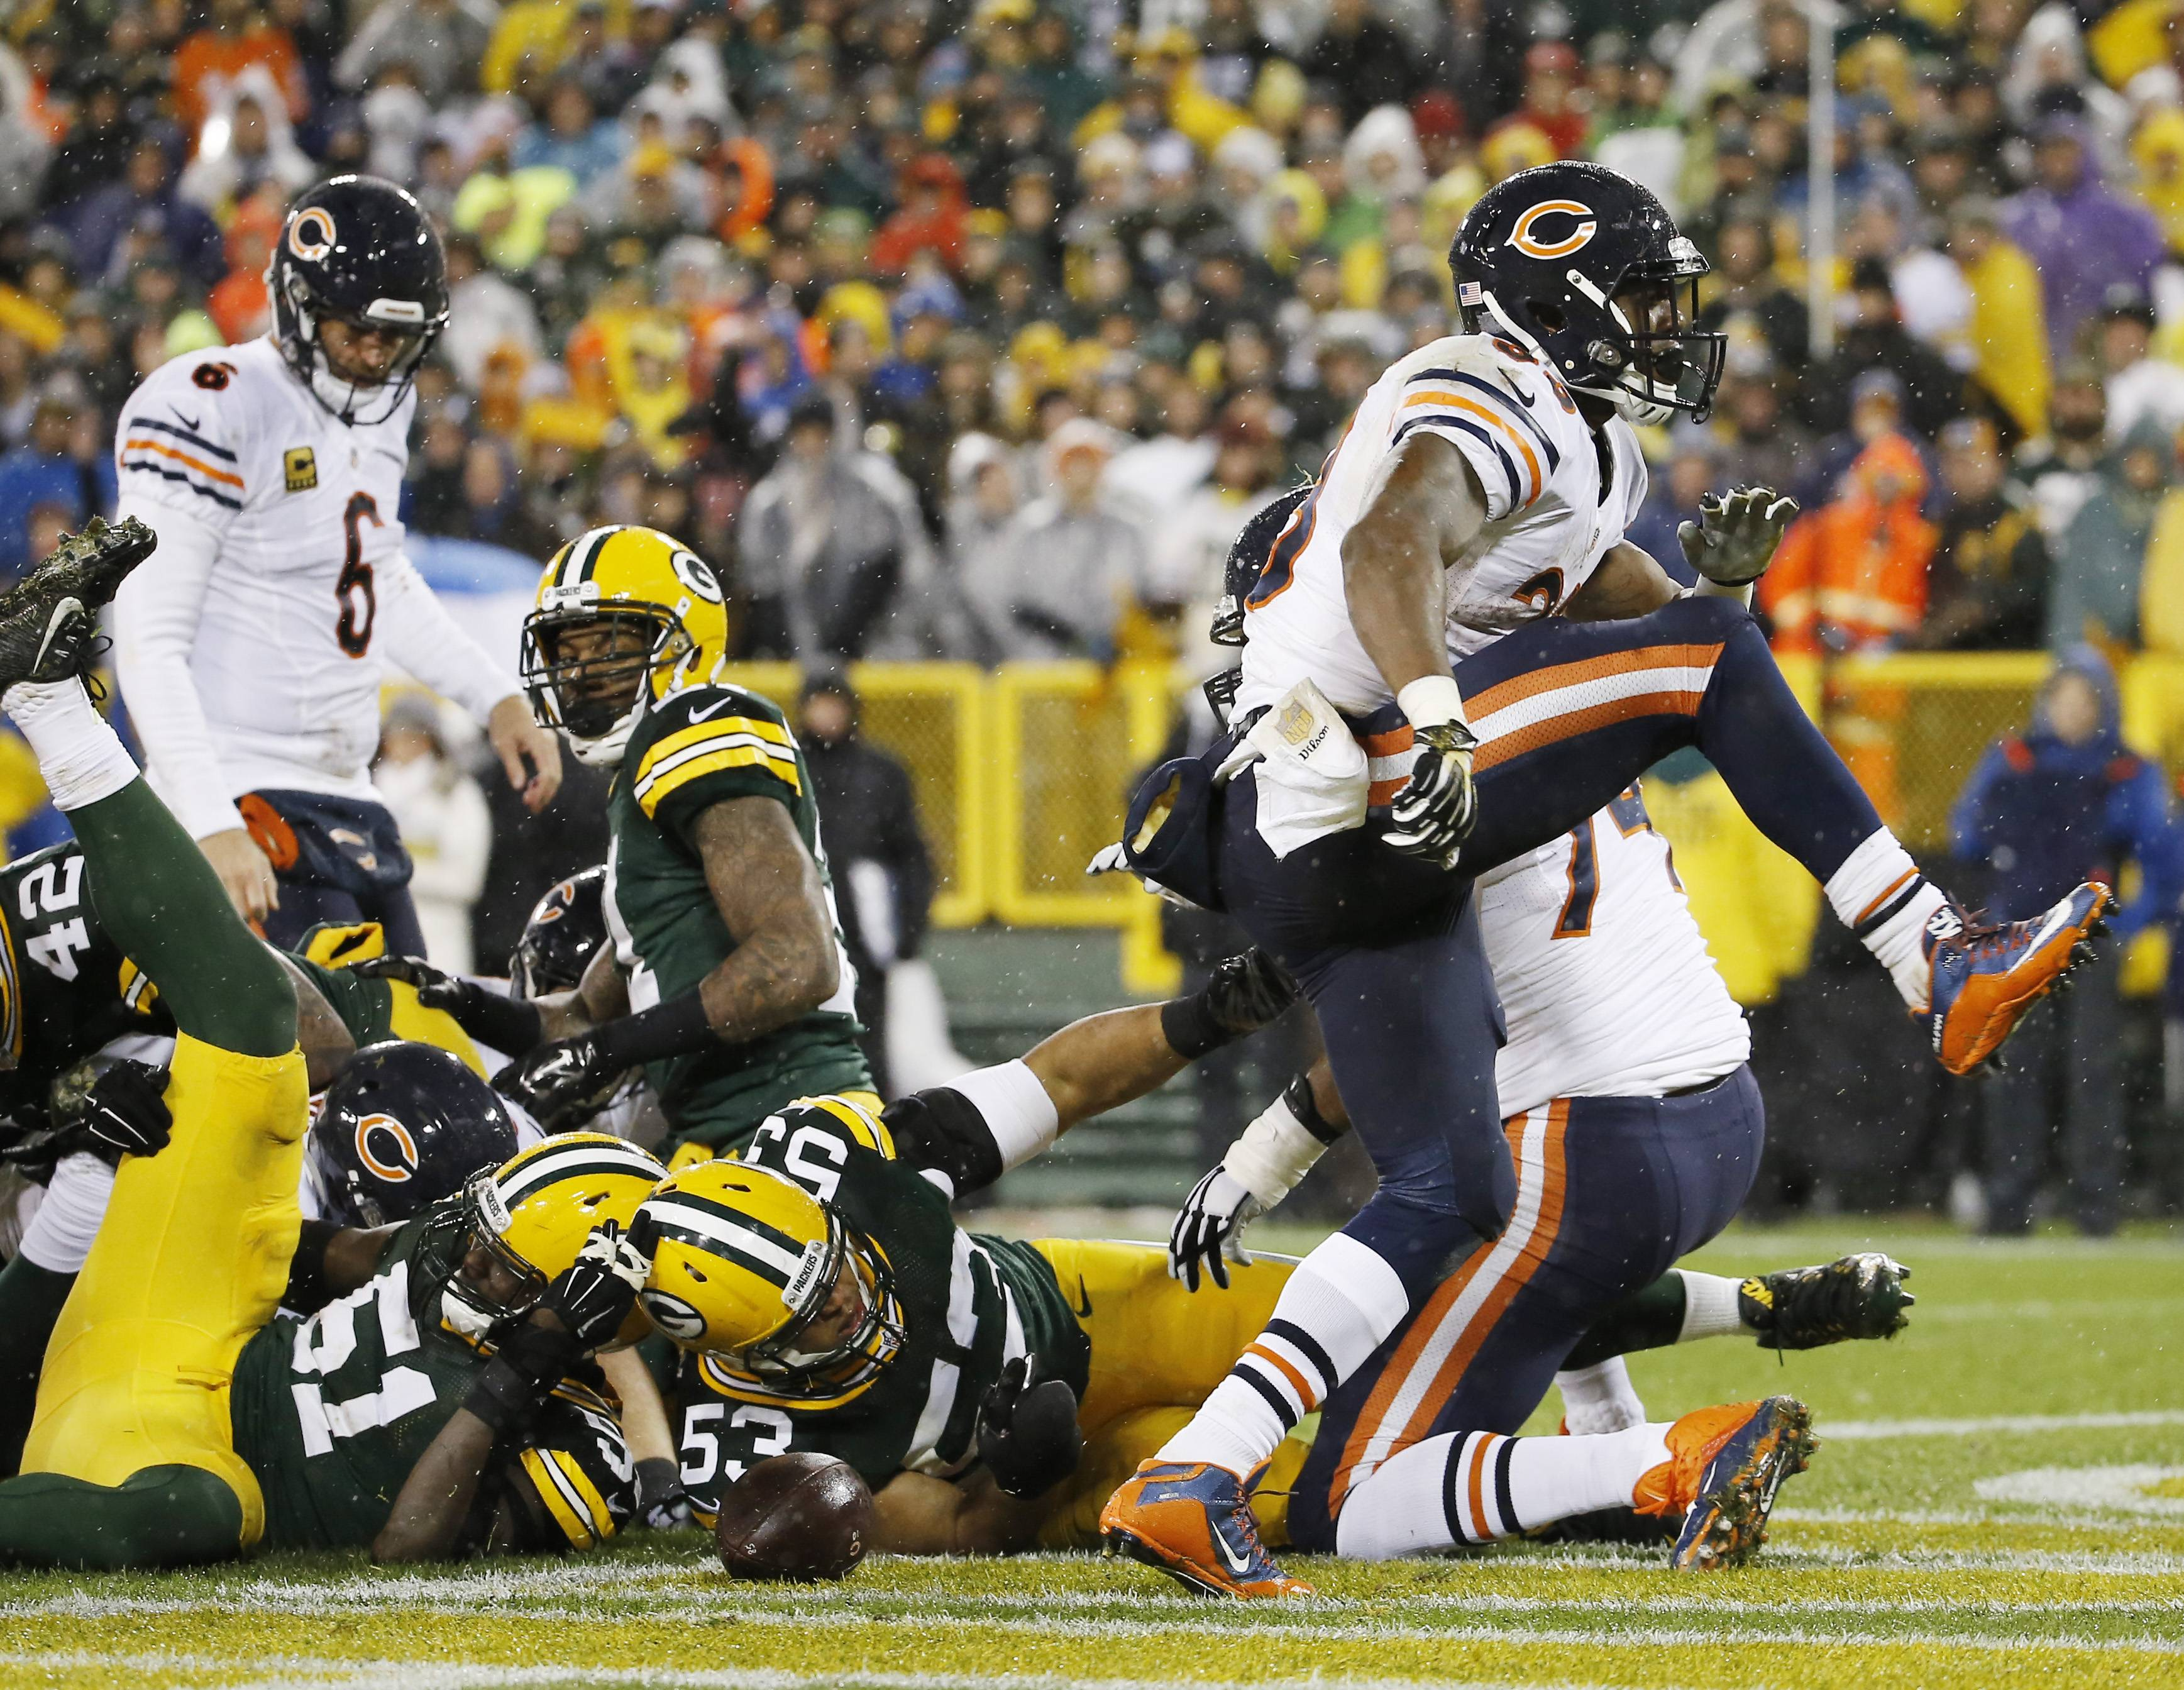 The Bears' Jeremy Langford celebrates his touchdown run during the first half of Thursday night's win in Green Bay.